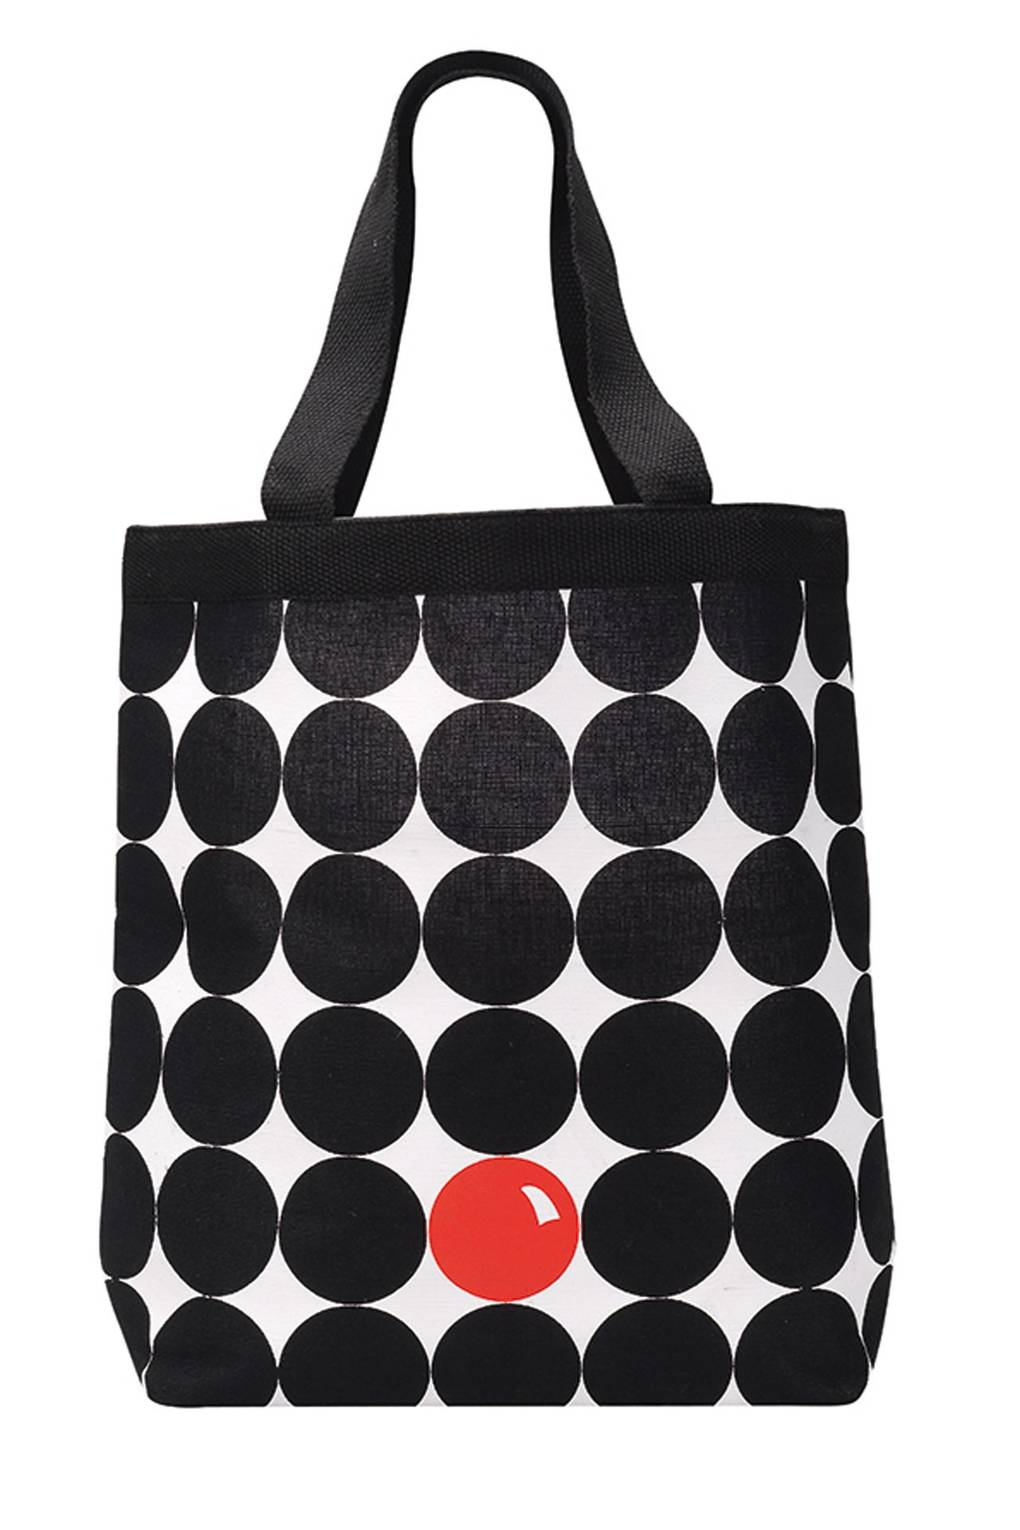 Lulu Guinness Red Nose Day Bags Comic Relief Sainsburys British Vogue